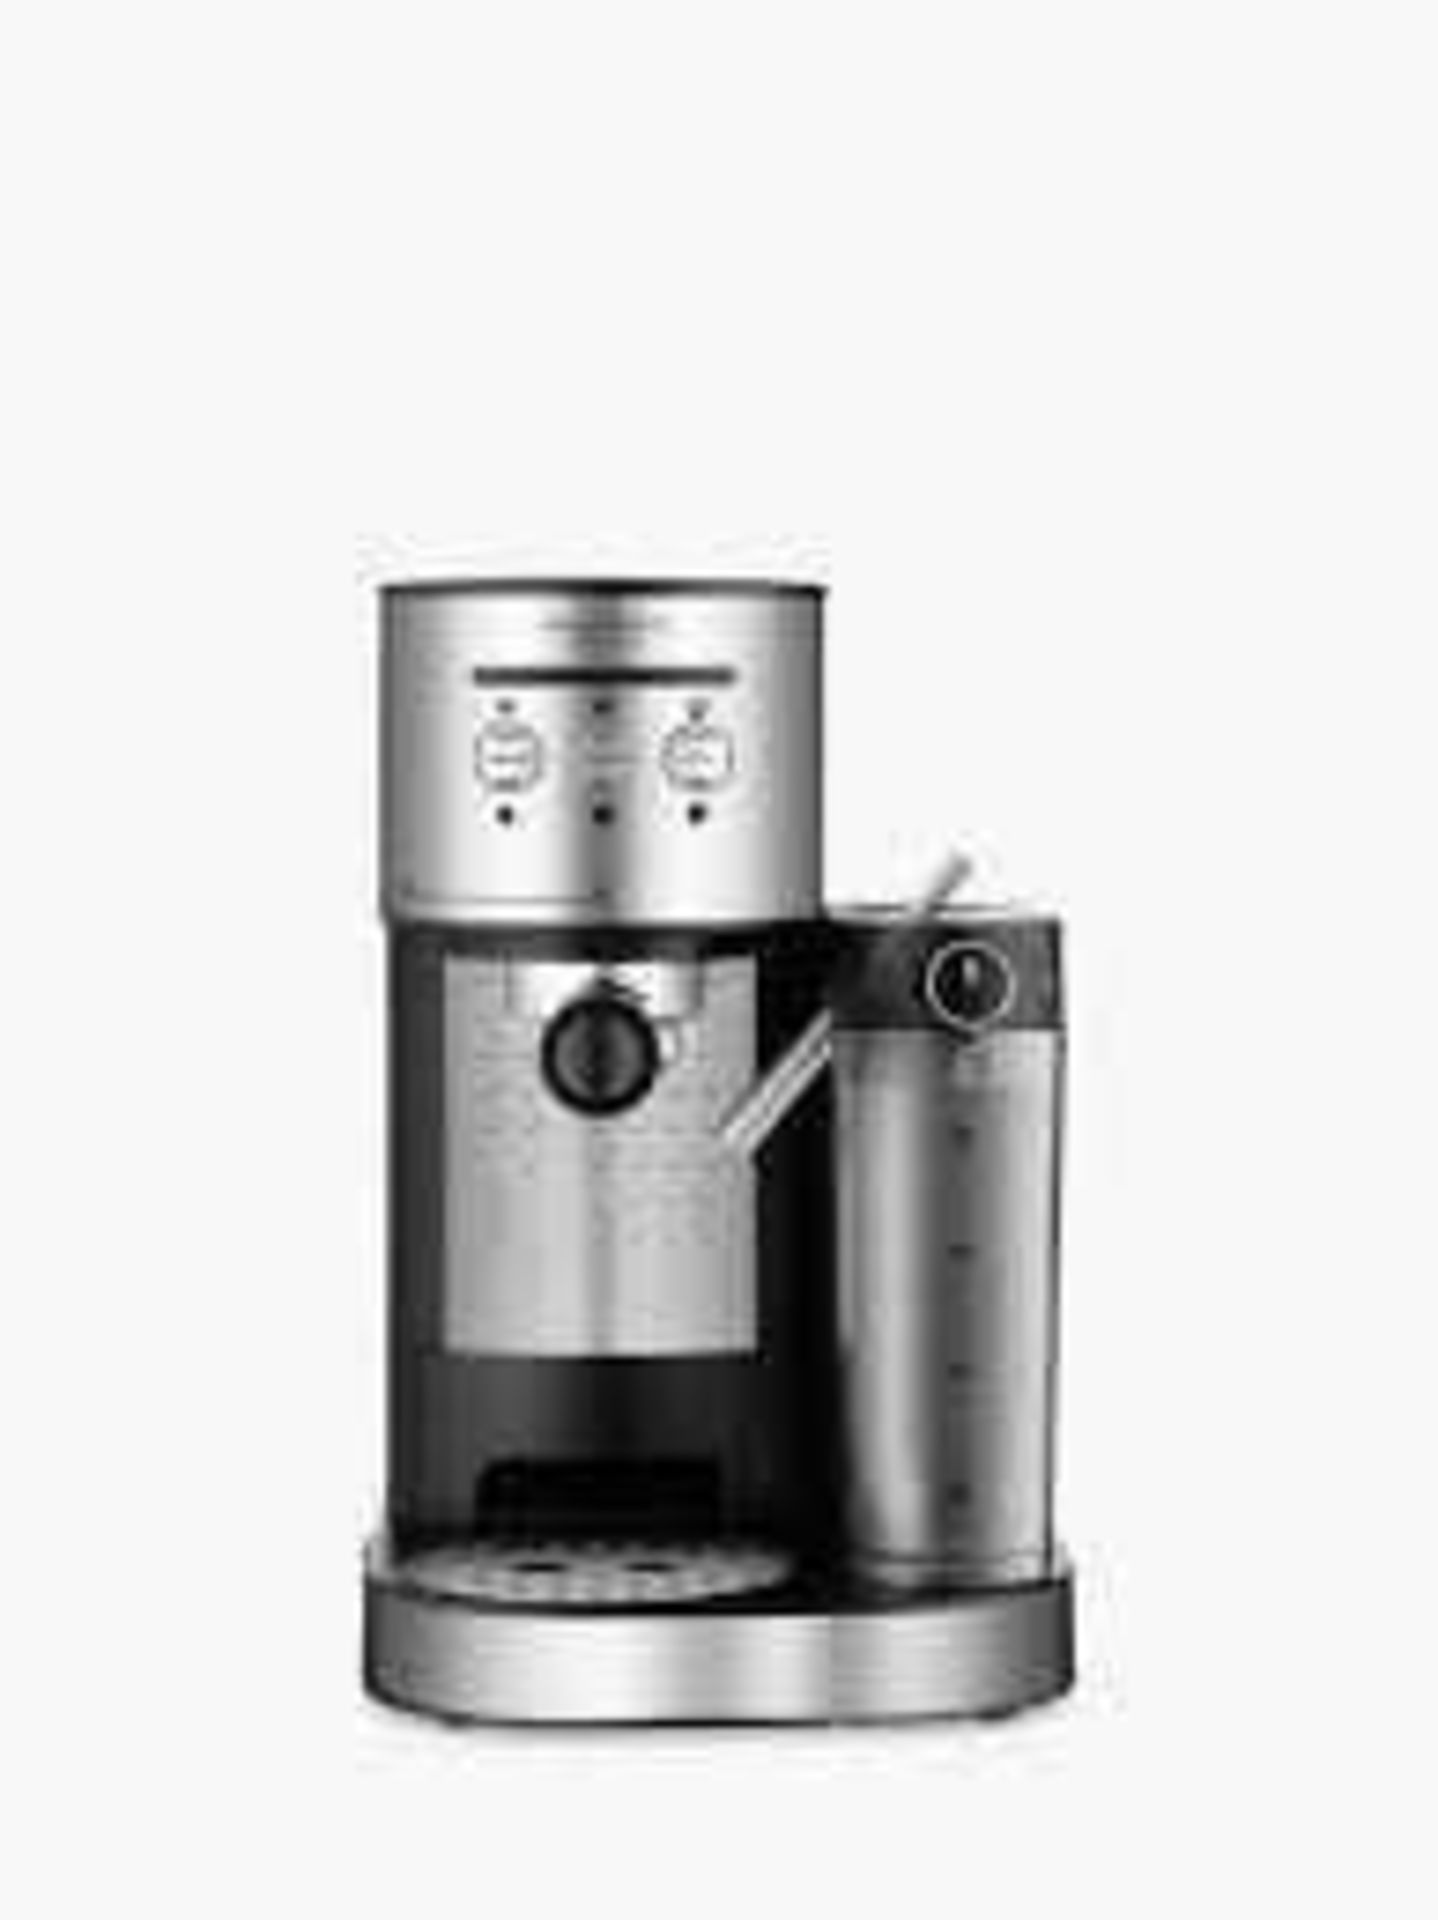 Lot 110 - RRP £100 Boxed John Lewis Pump Espresso Coffee Machine With Integrated Milk System